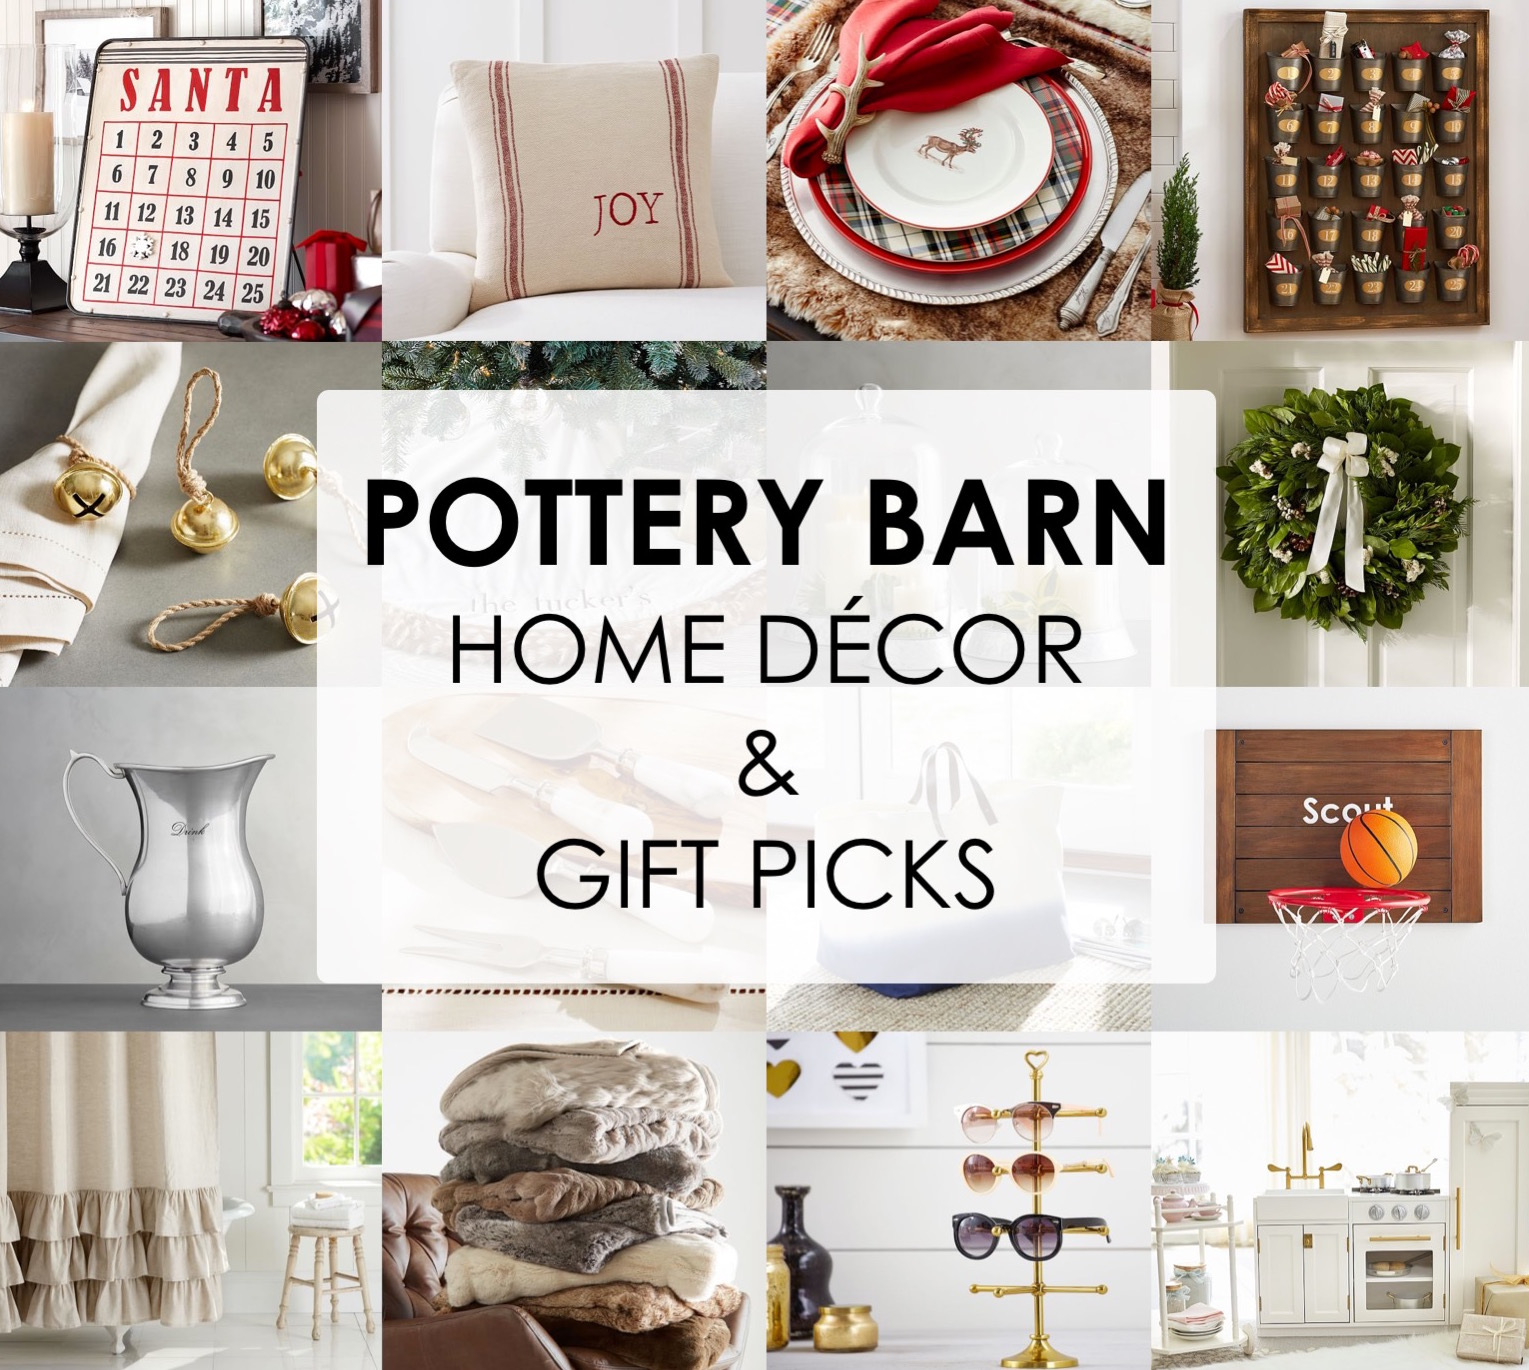 Home Design Gift Ideas: Holiday Decor & Gift Ideas: Pottery Barn Edition: All My